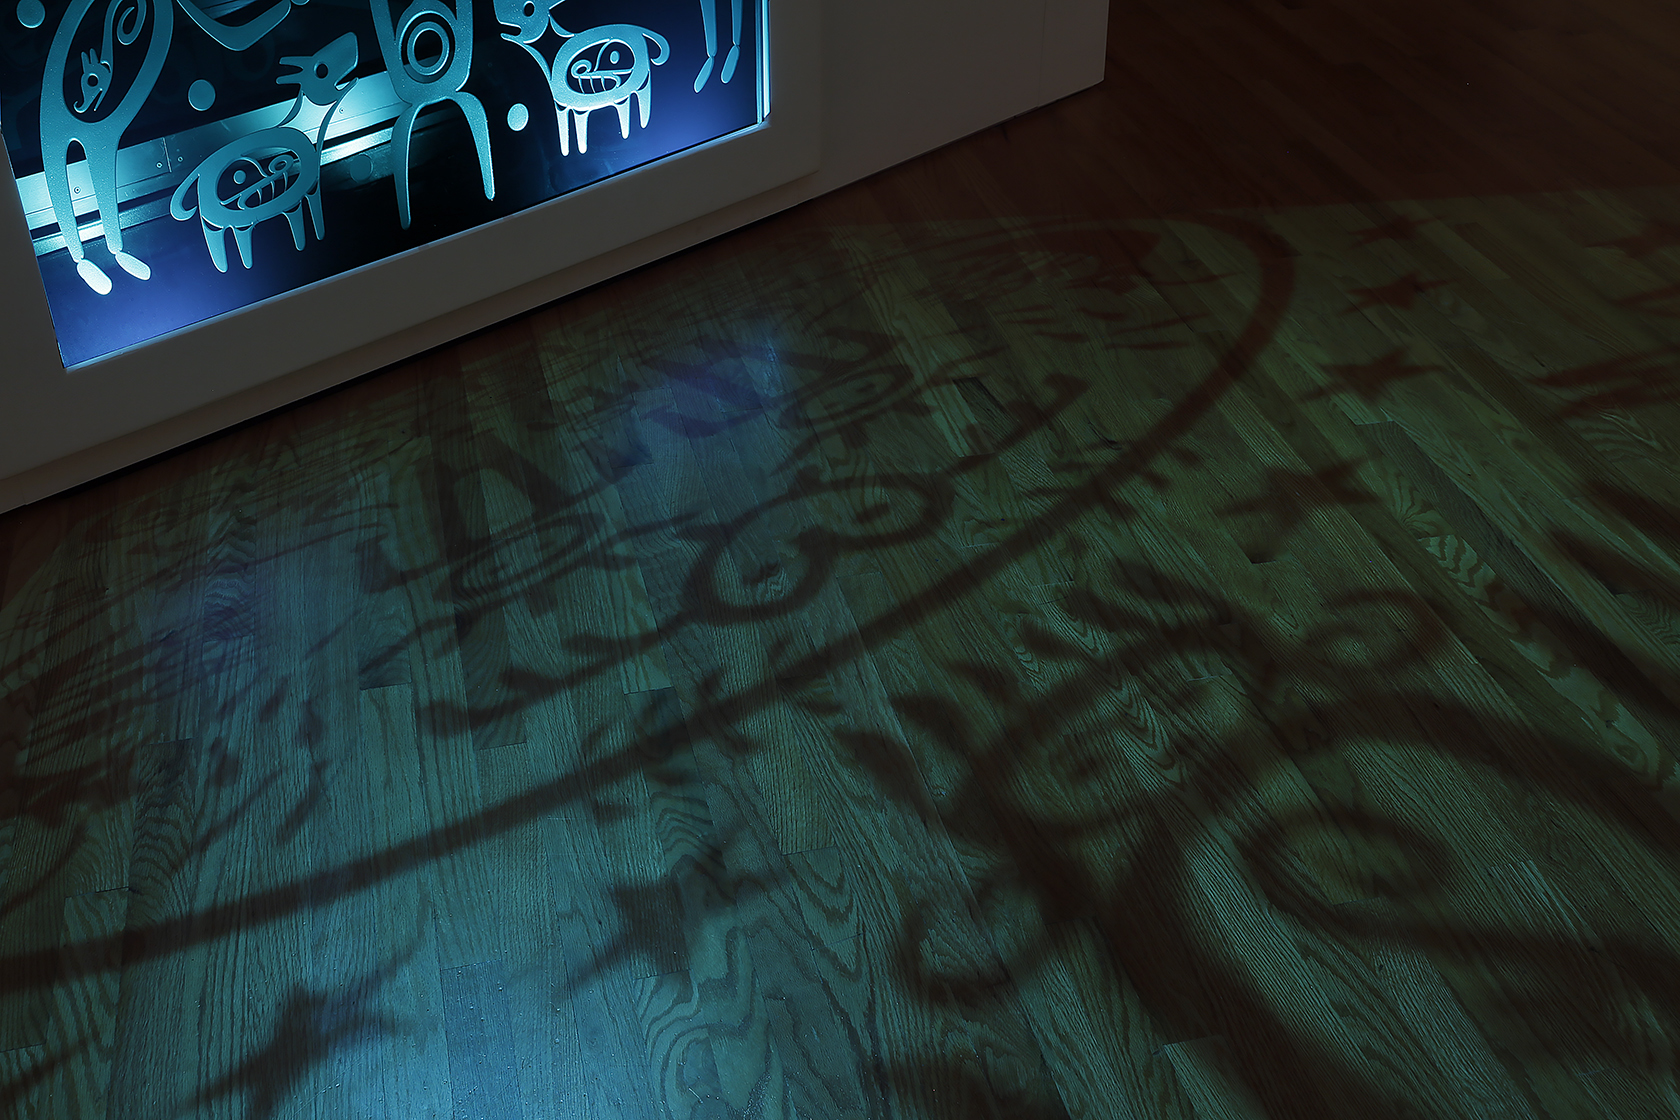 Shadows of stars, animals and figures are cast on from a sculpture onto a hardwood floor